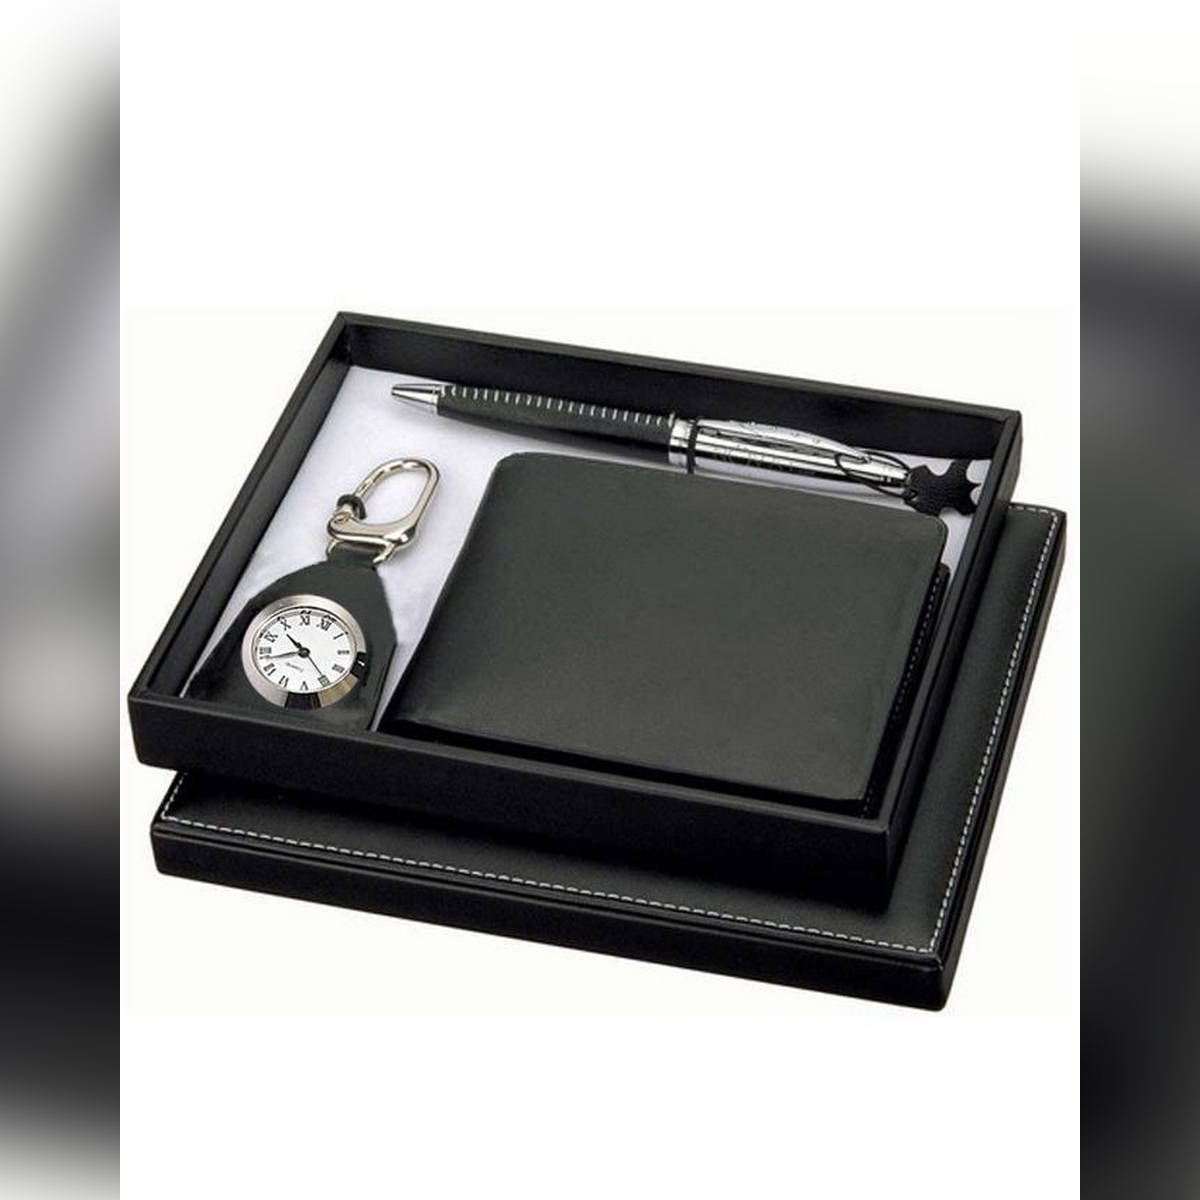 3in1 Gift Set With Keychain Watch